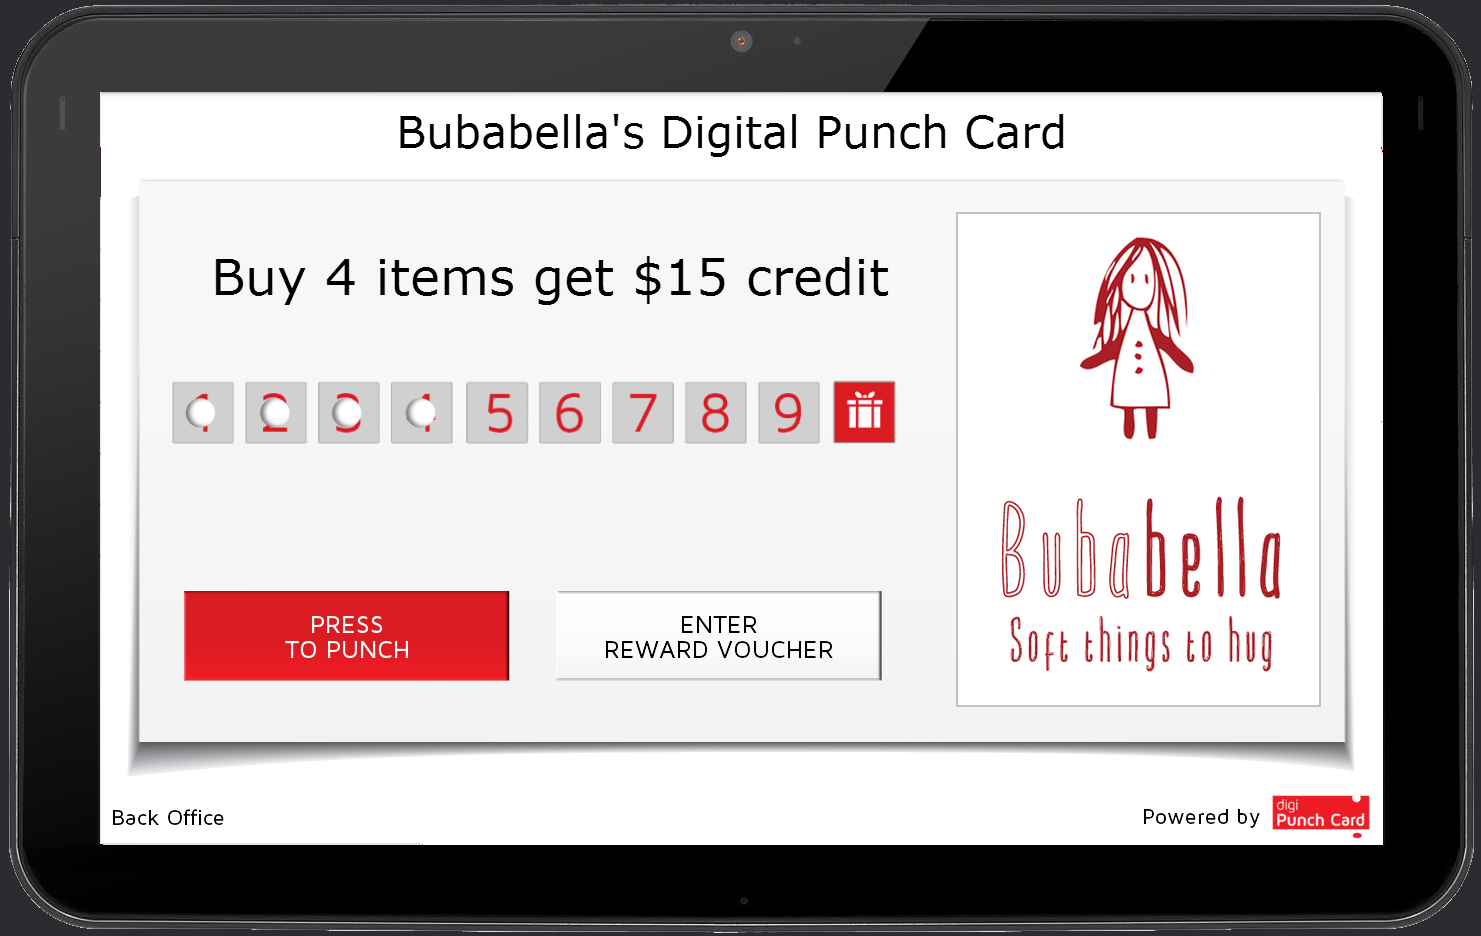 Digipunchcard loyalty punch card for business bubabella let me use this opportunity to introduce digipunchcard a digital punch card for retailers we use digipunchcard in our studio shops in israel magicingreecefo Image collections